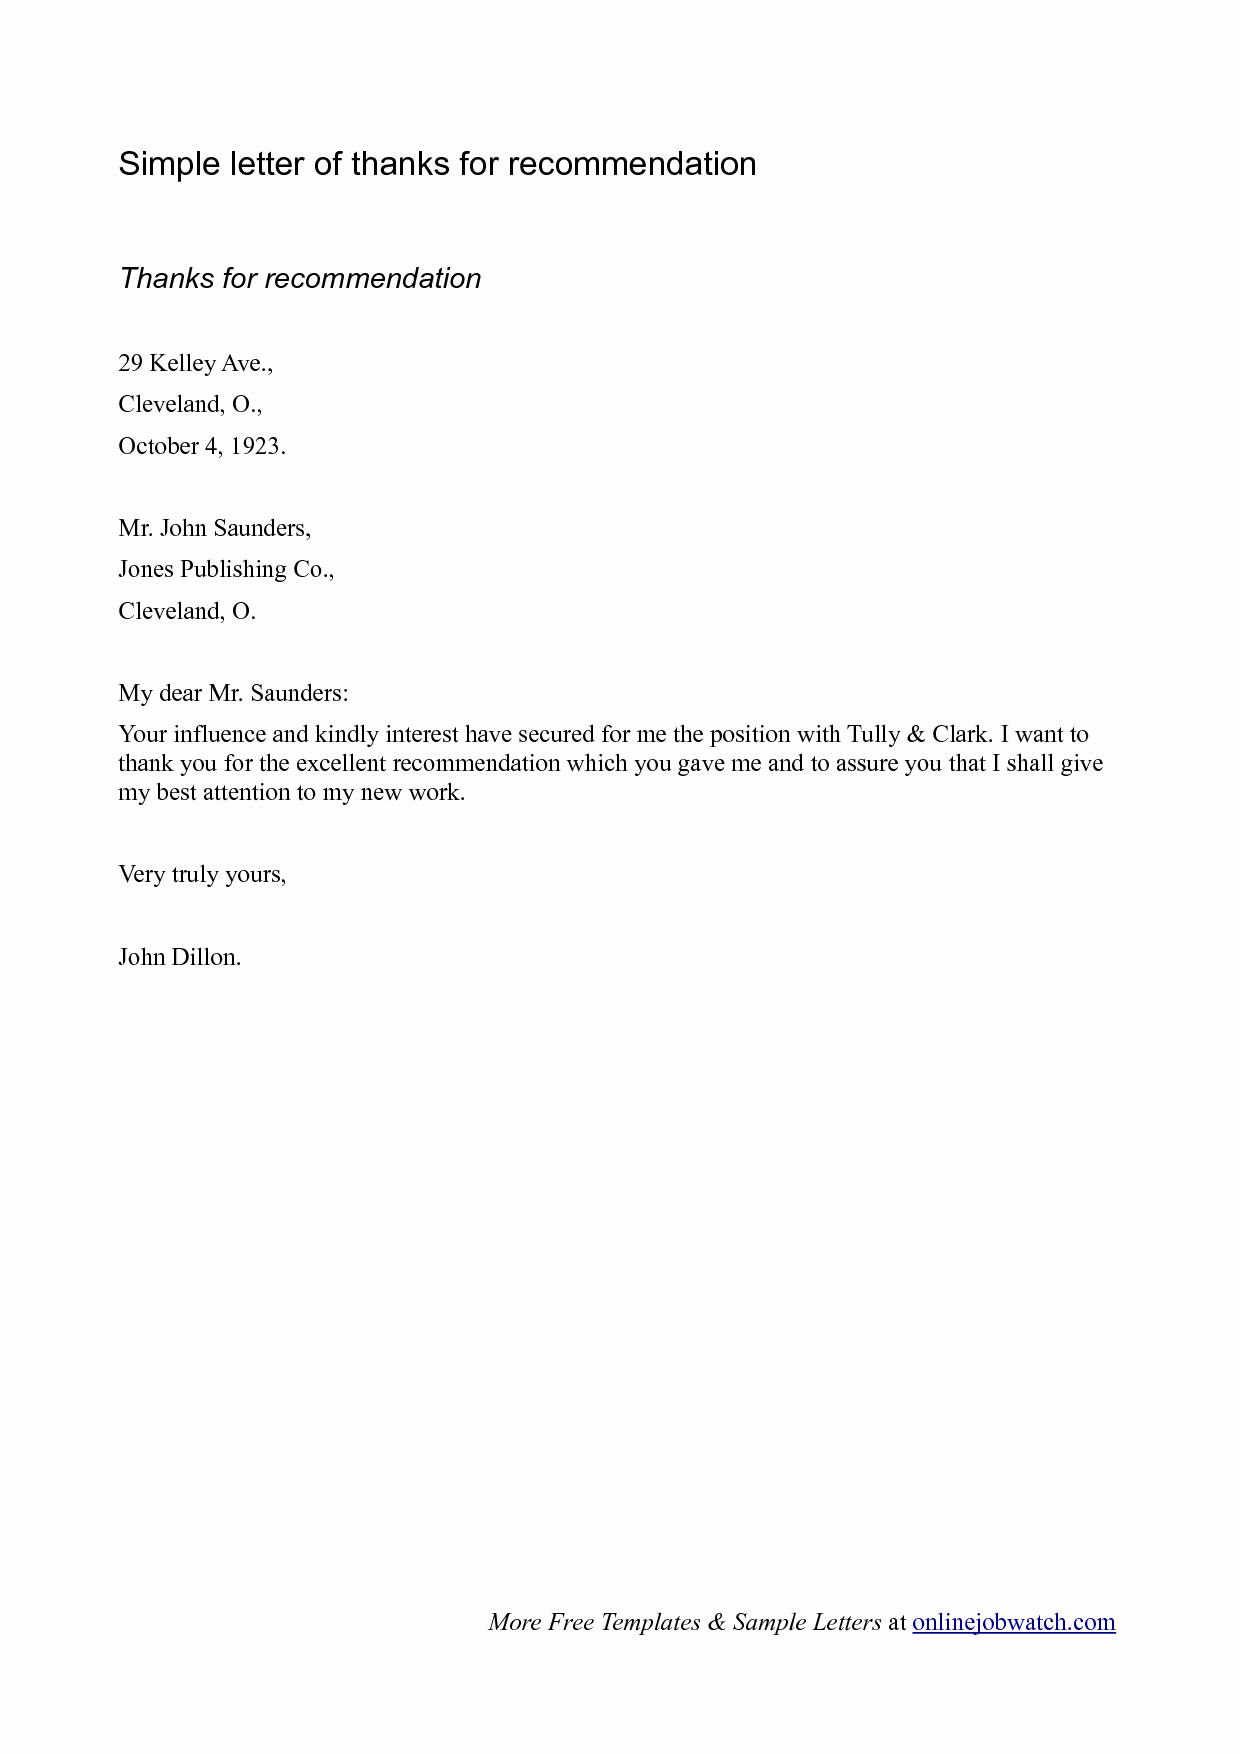 Simple Recommendation Letter for Employment Inspirational Sample A Simple Re Mendation Letter Oshiborifo